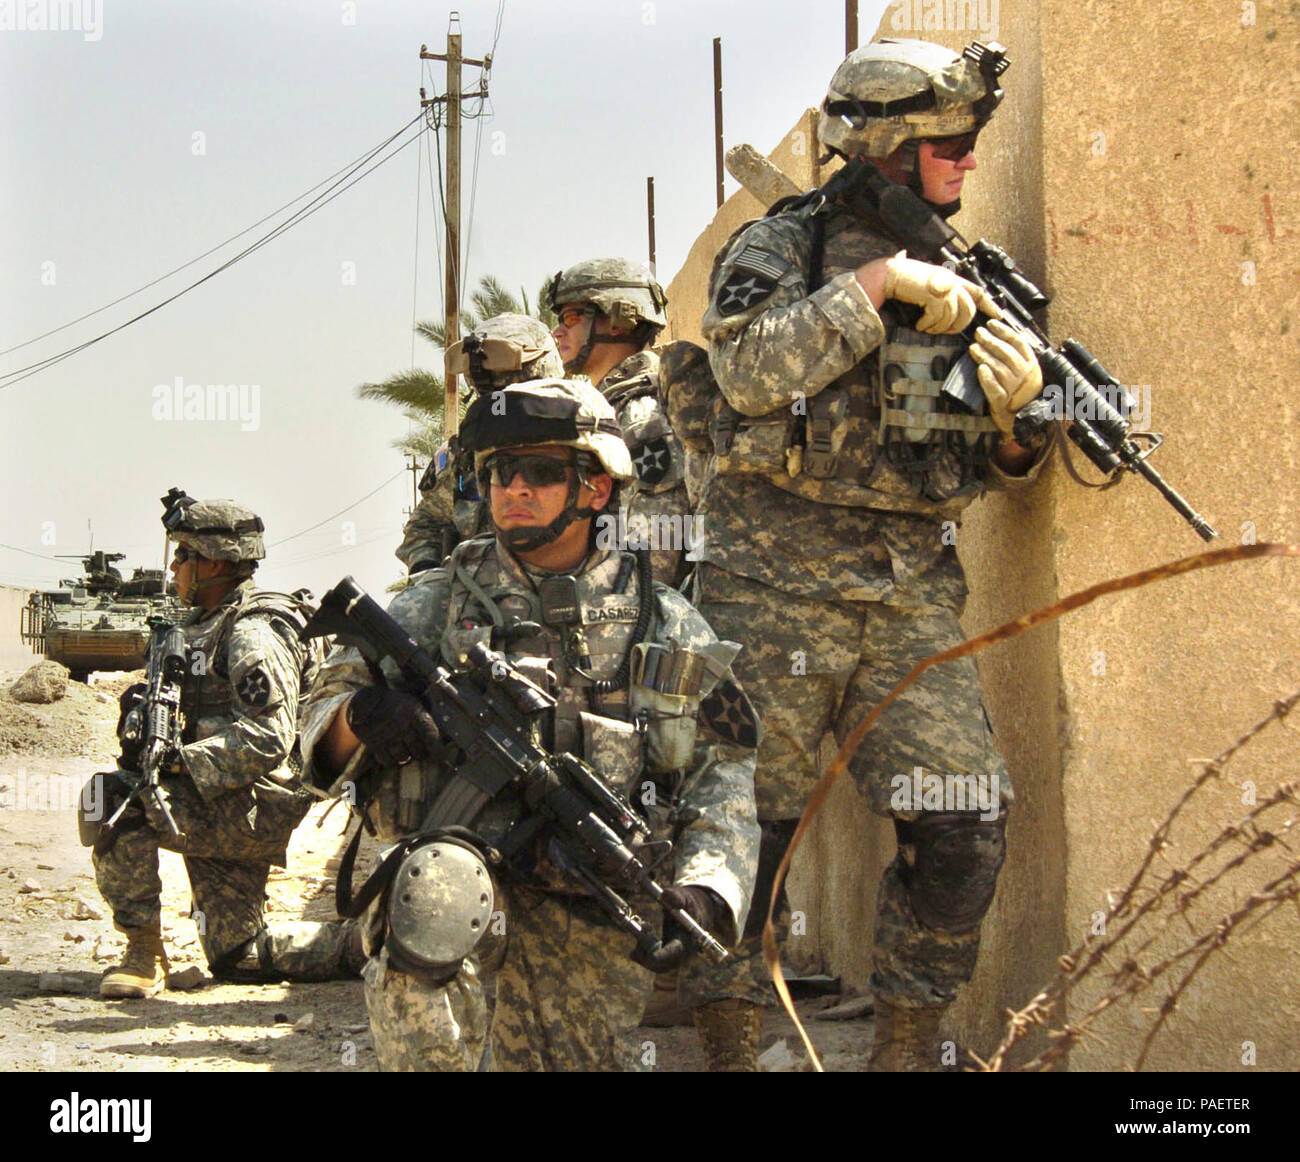 U.S. Army Soldiers from Bravo Company, 1st Battalion, 23rd Infantry Regiment conduct an area reconnaissance mission in Baghdad, Iraq, Aug. 11, 2006. Stock Photo